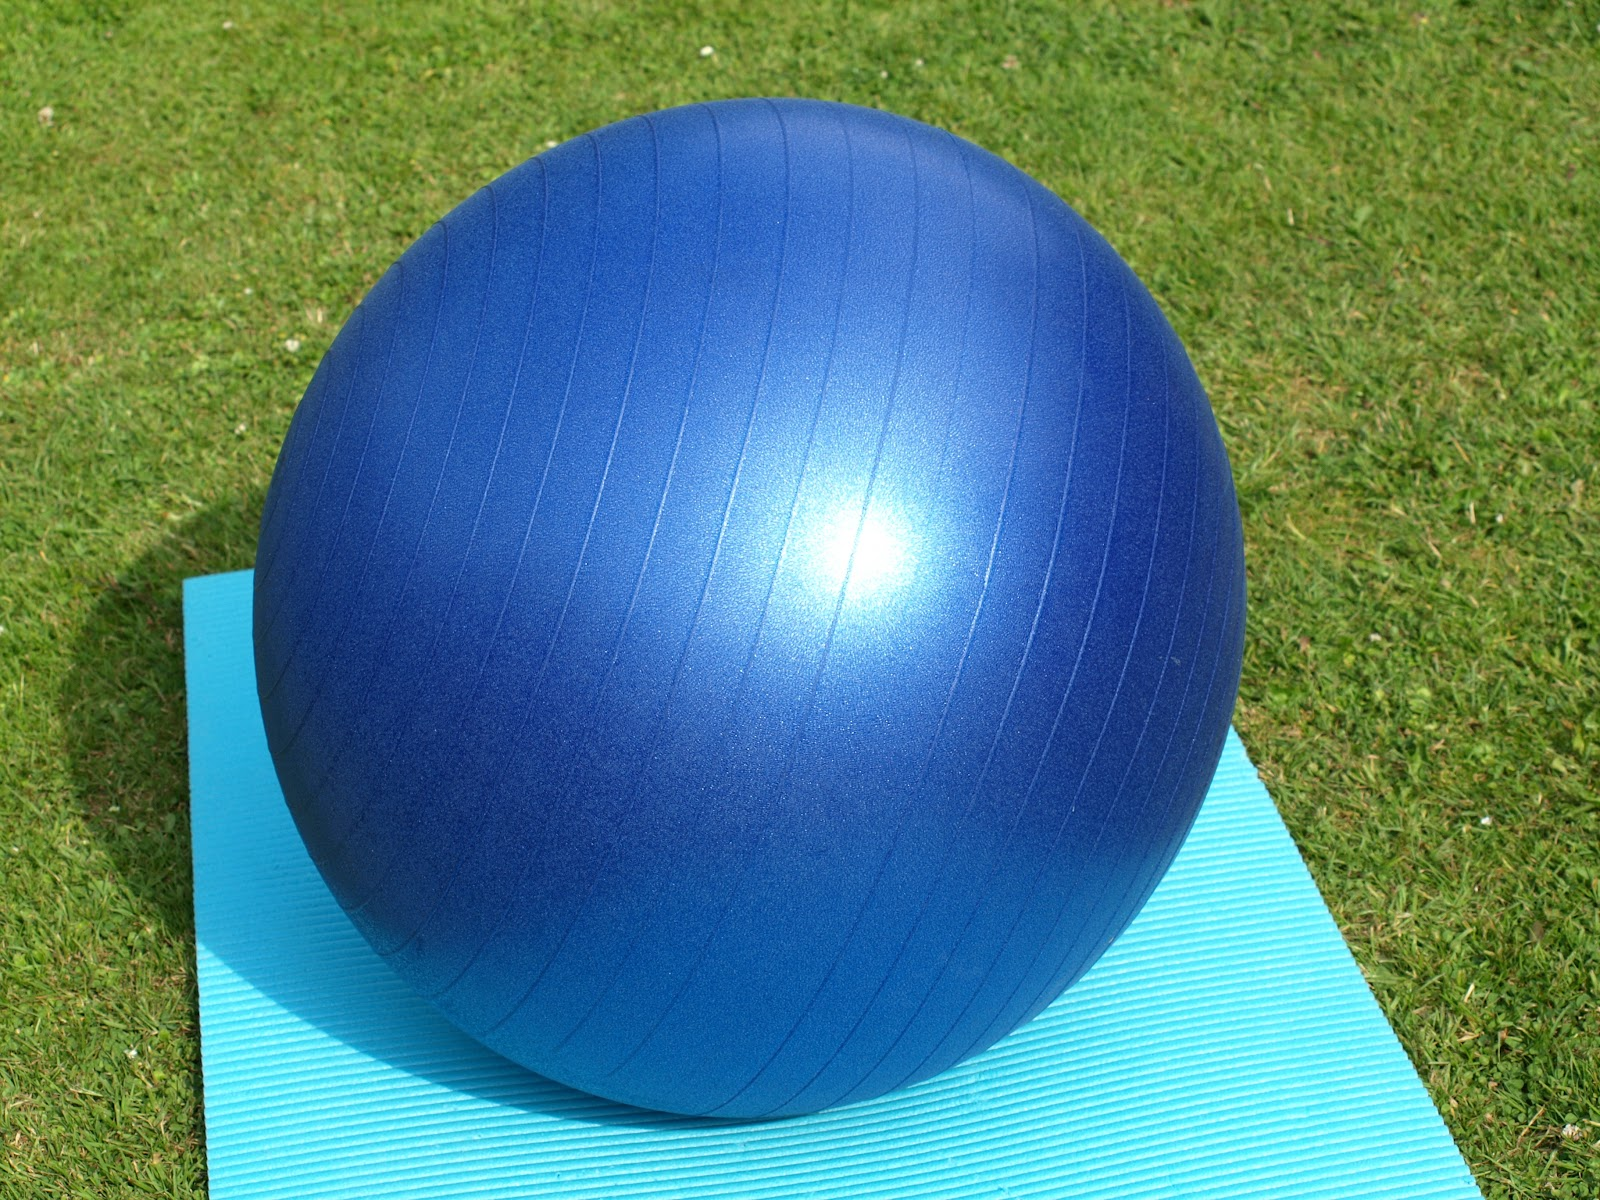 exercise-ball-374948.jpg